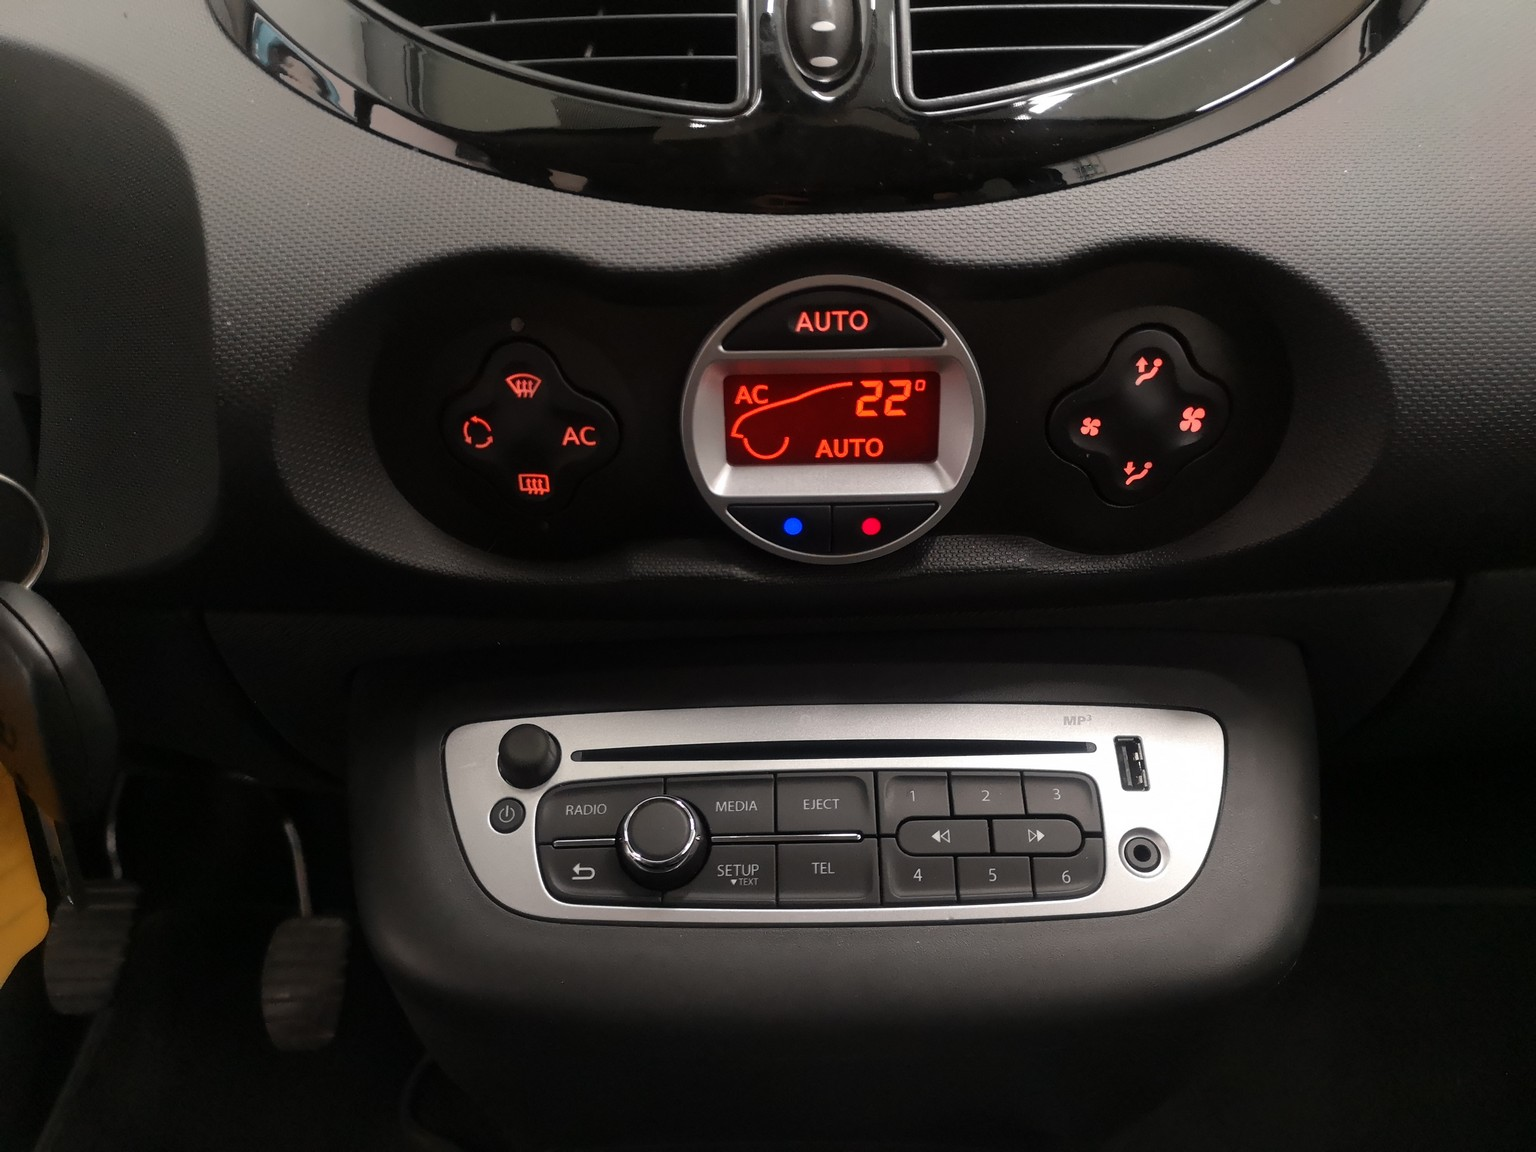 RENAULT TWINGO II 2013 à 6490 € - Photo n°55